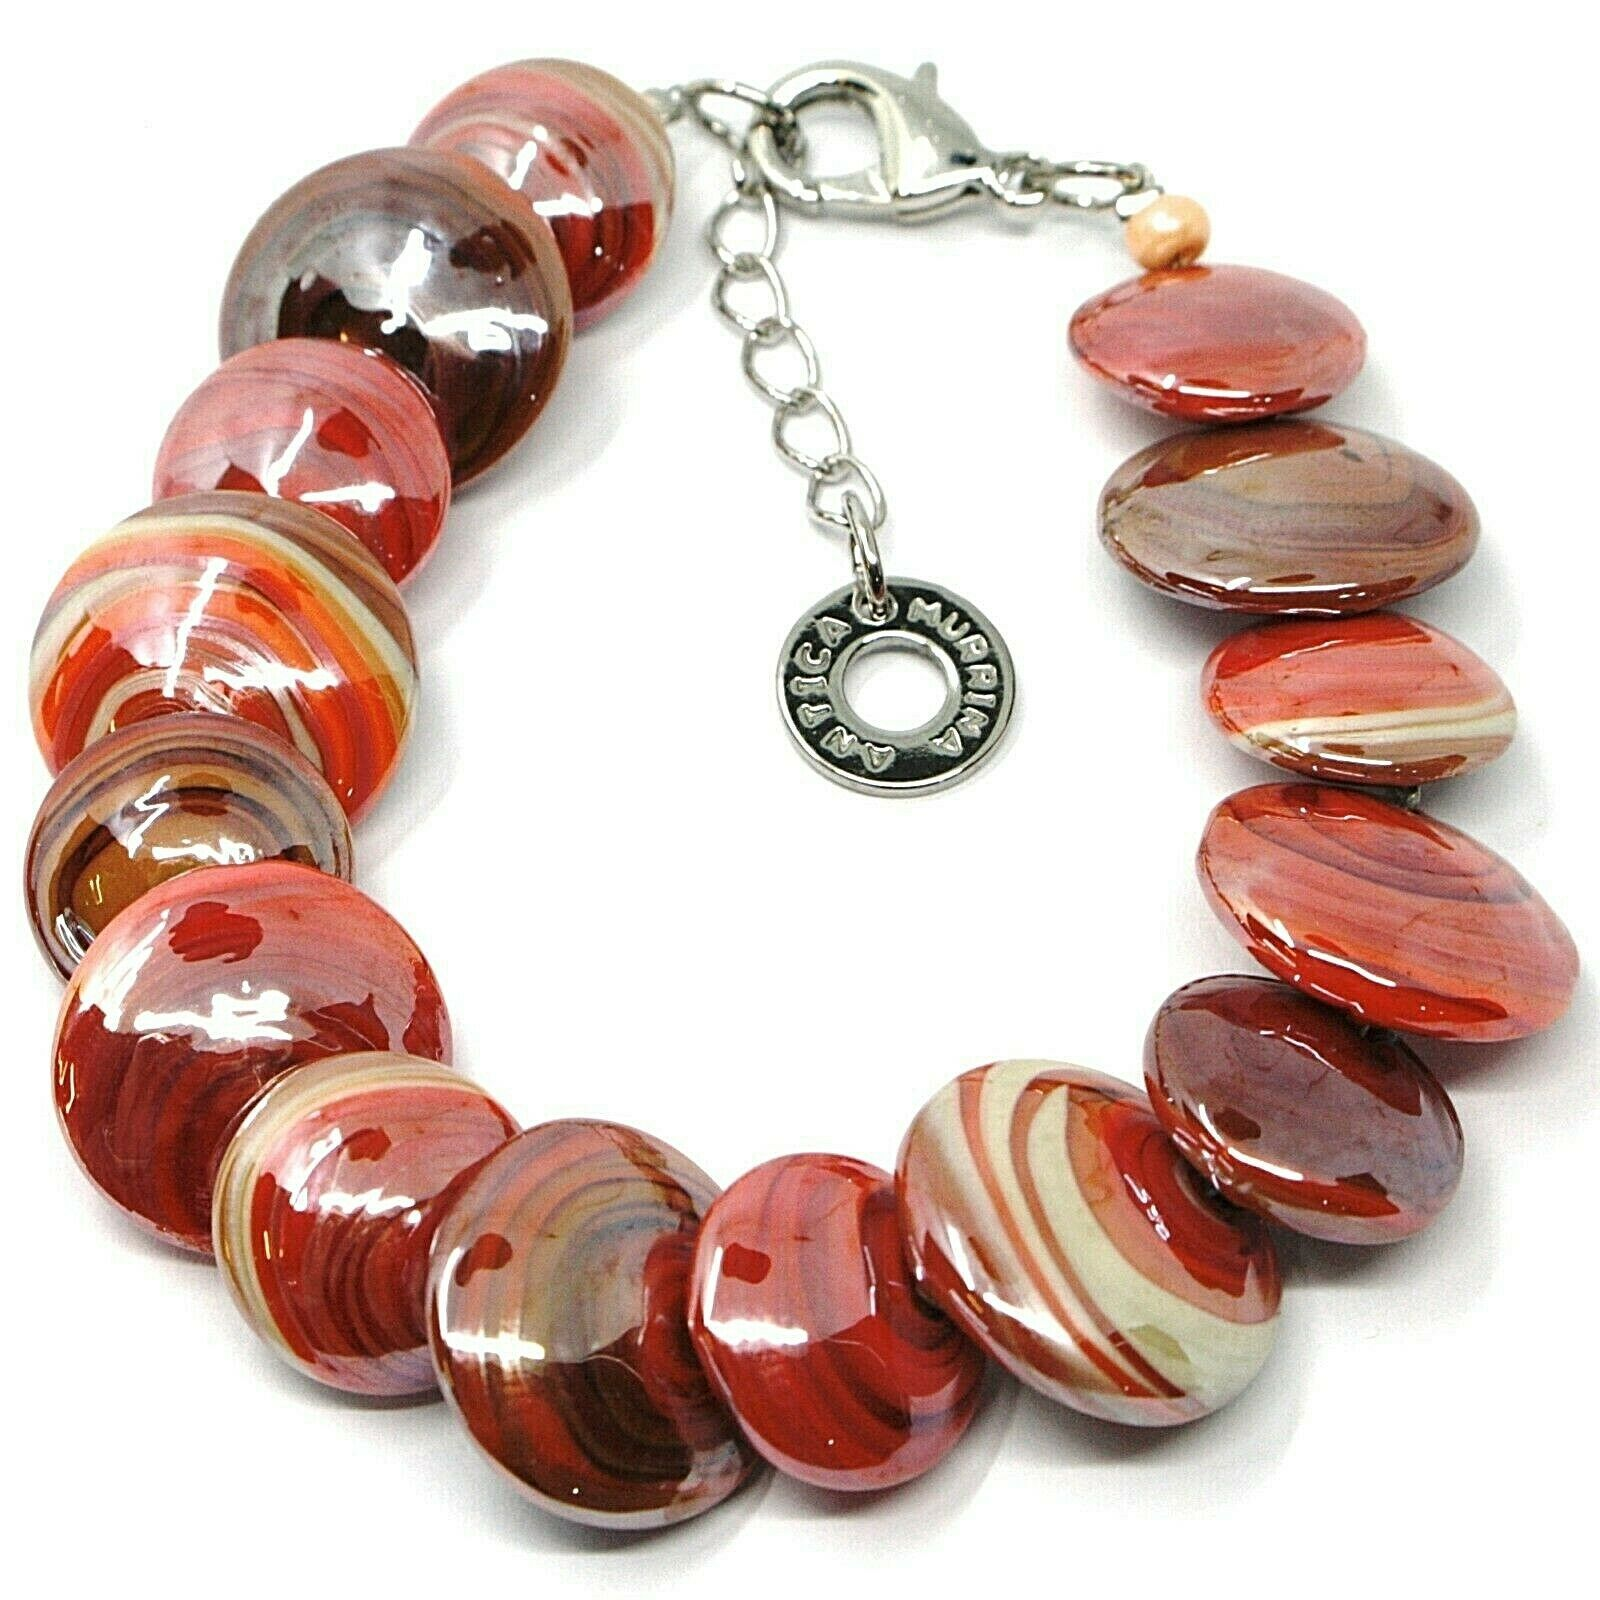 Bracelet Antica Murrina Venezia, BR715A25 Discs, Coins, Red Colour Coral